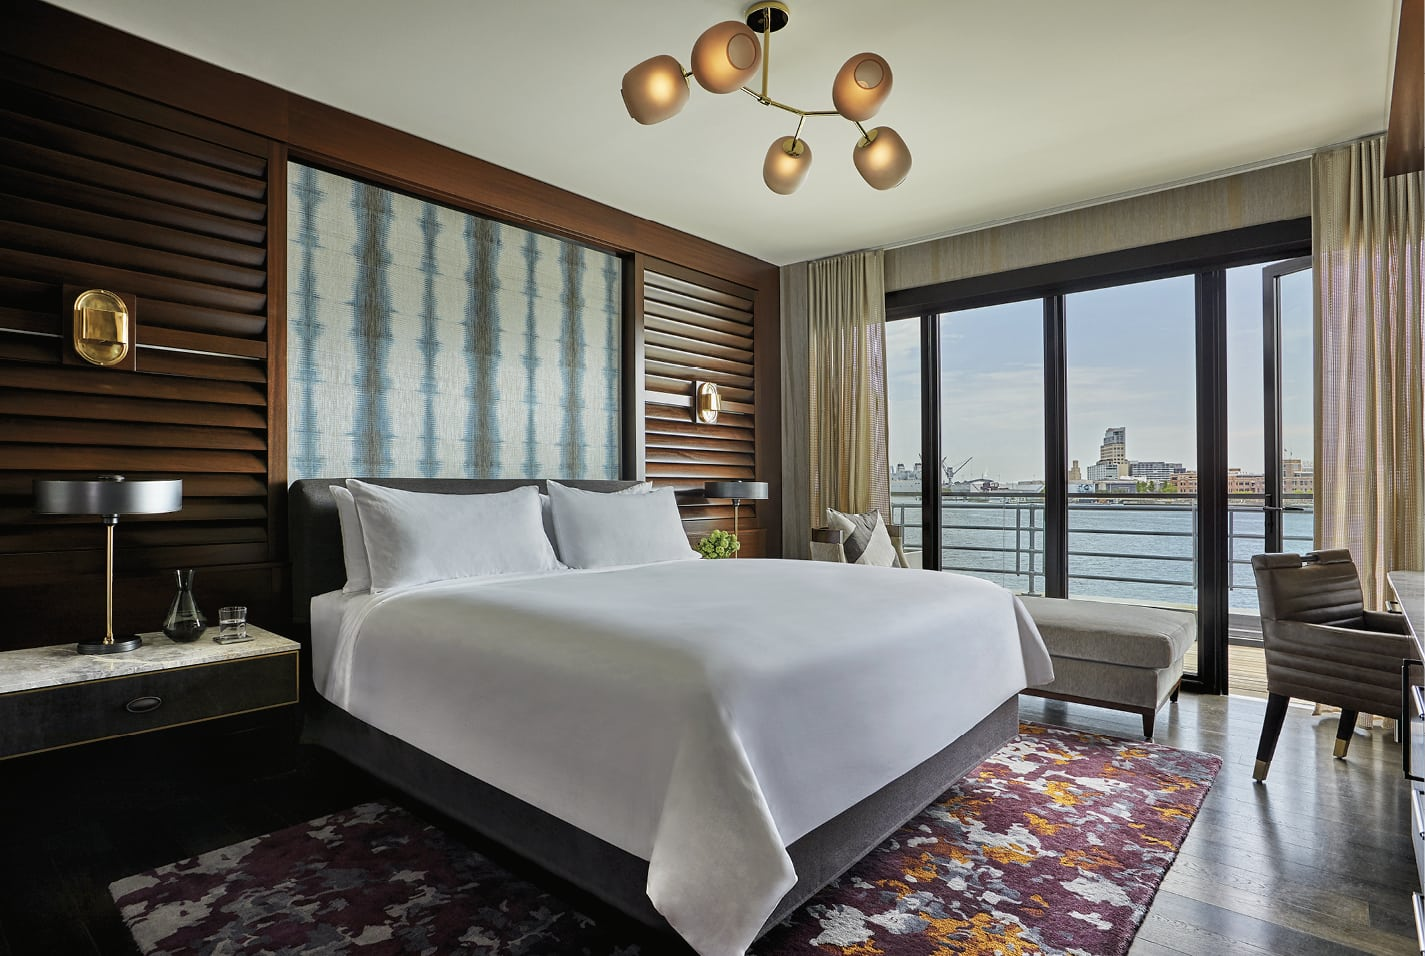 Hotel room interior that looks over the harbor